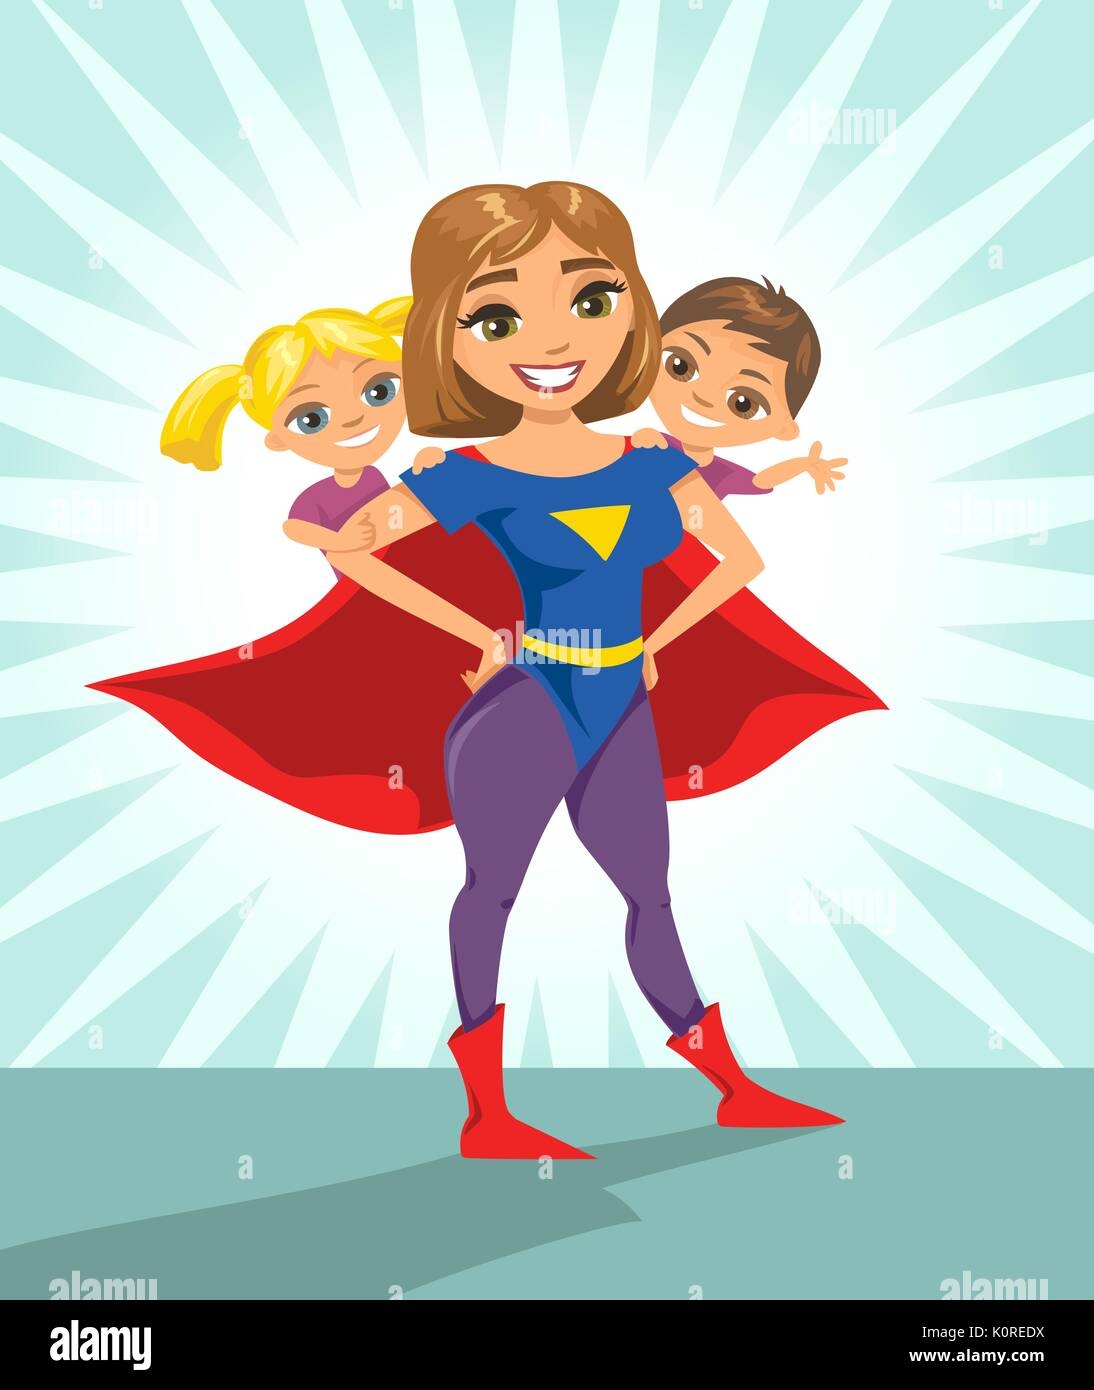 Super hero, super mom. Happy smiling super mother with her children. Vector illustration with isolated characters. - Stock Vector